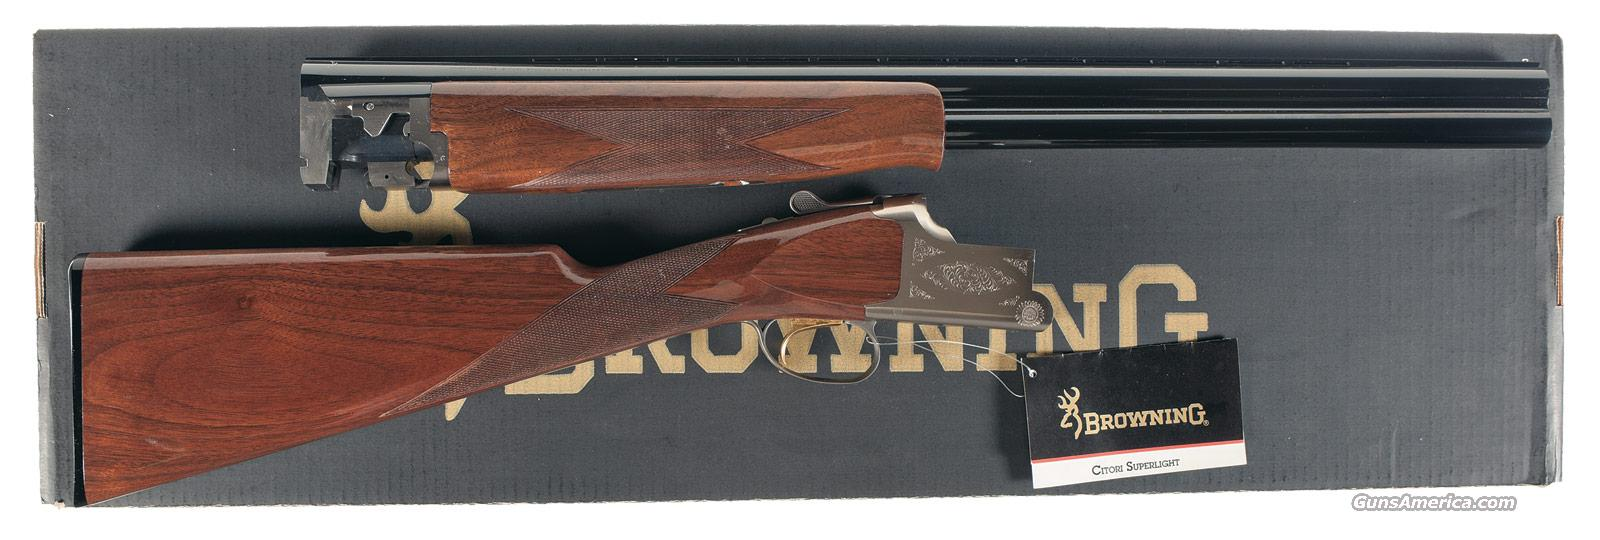 Browning Citori Superlight Feather  Guns > Shotguns > Browning Shotguns > Over Unders > Citori > Hunting